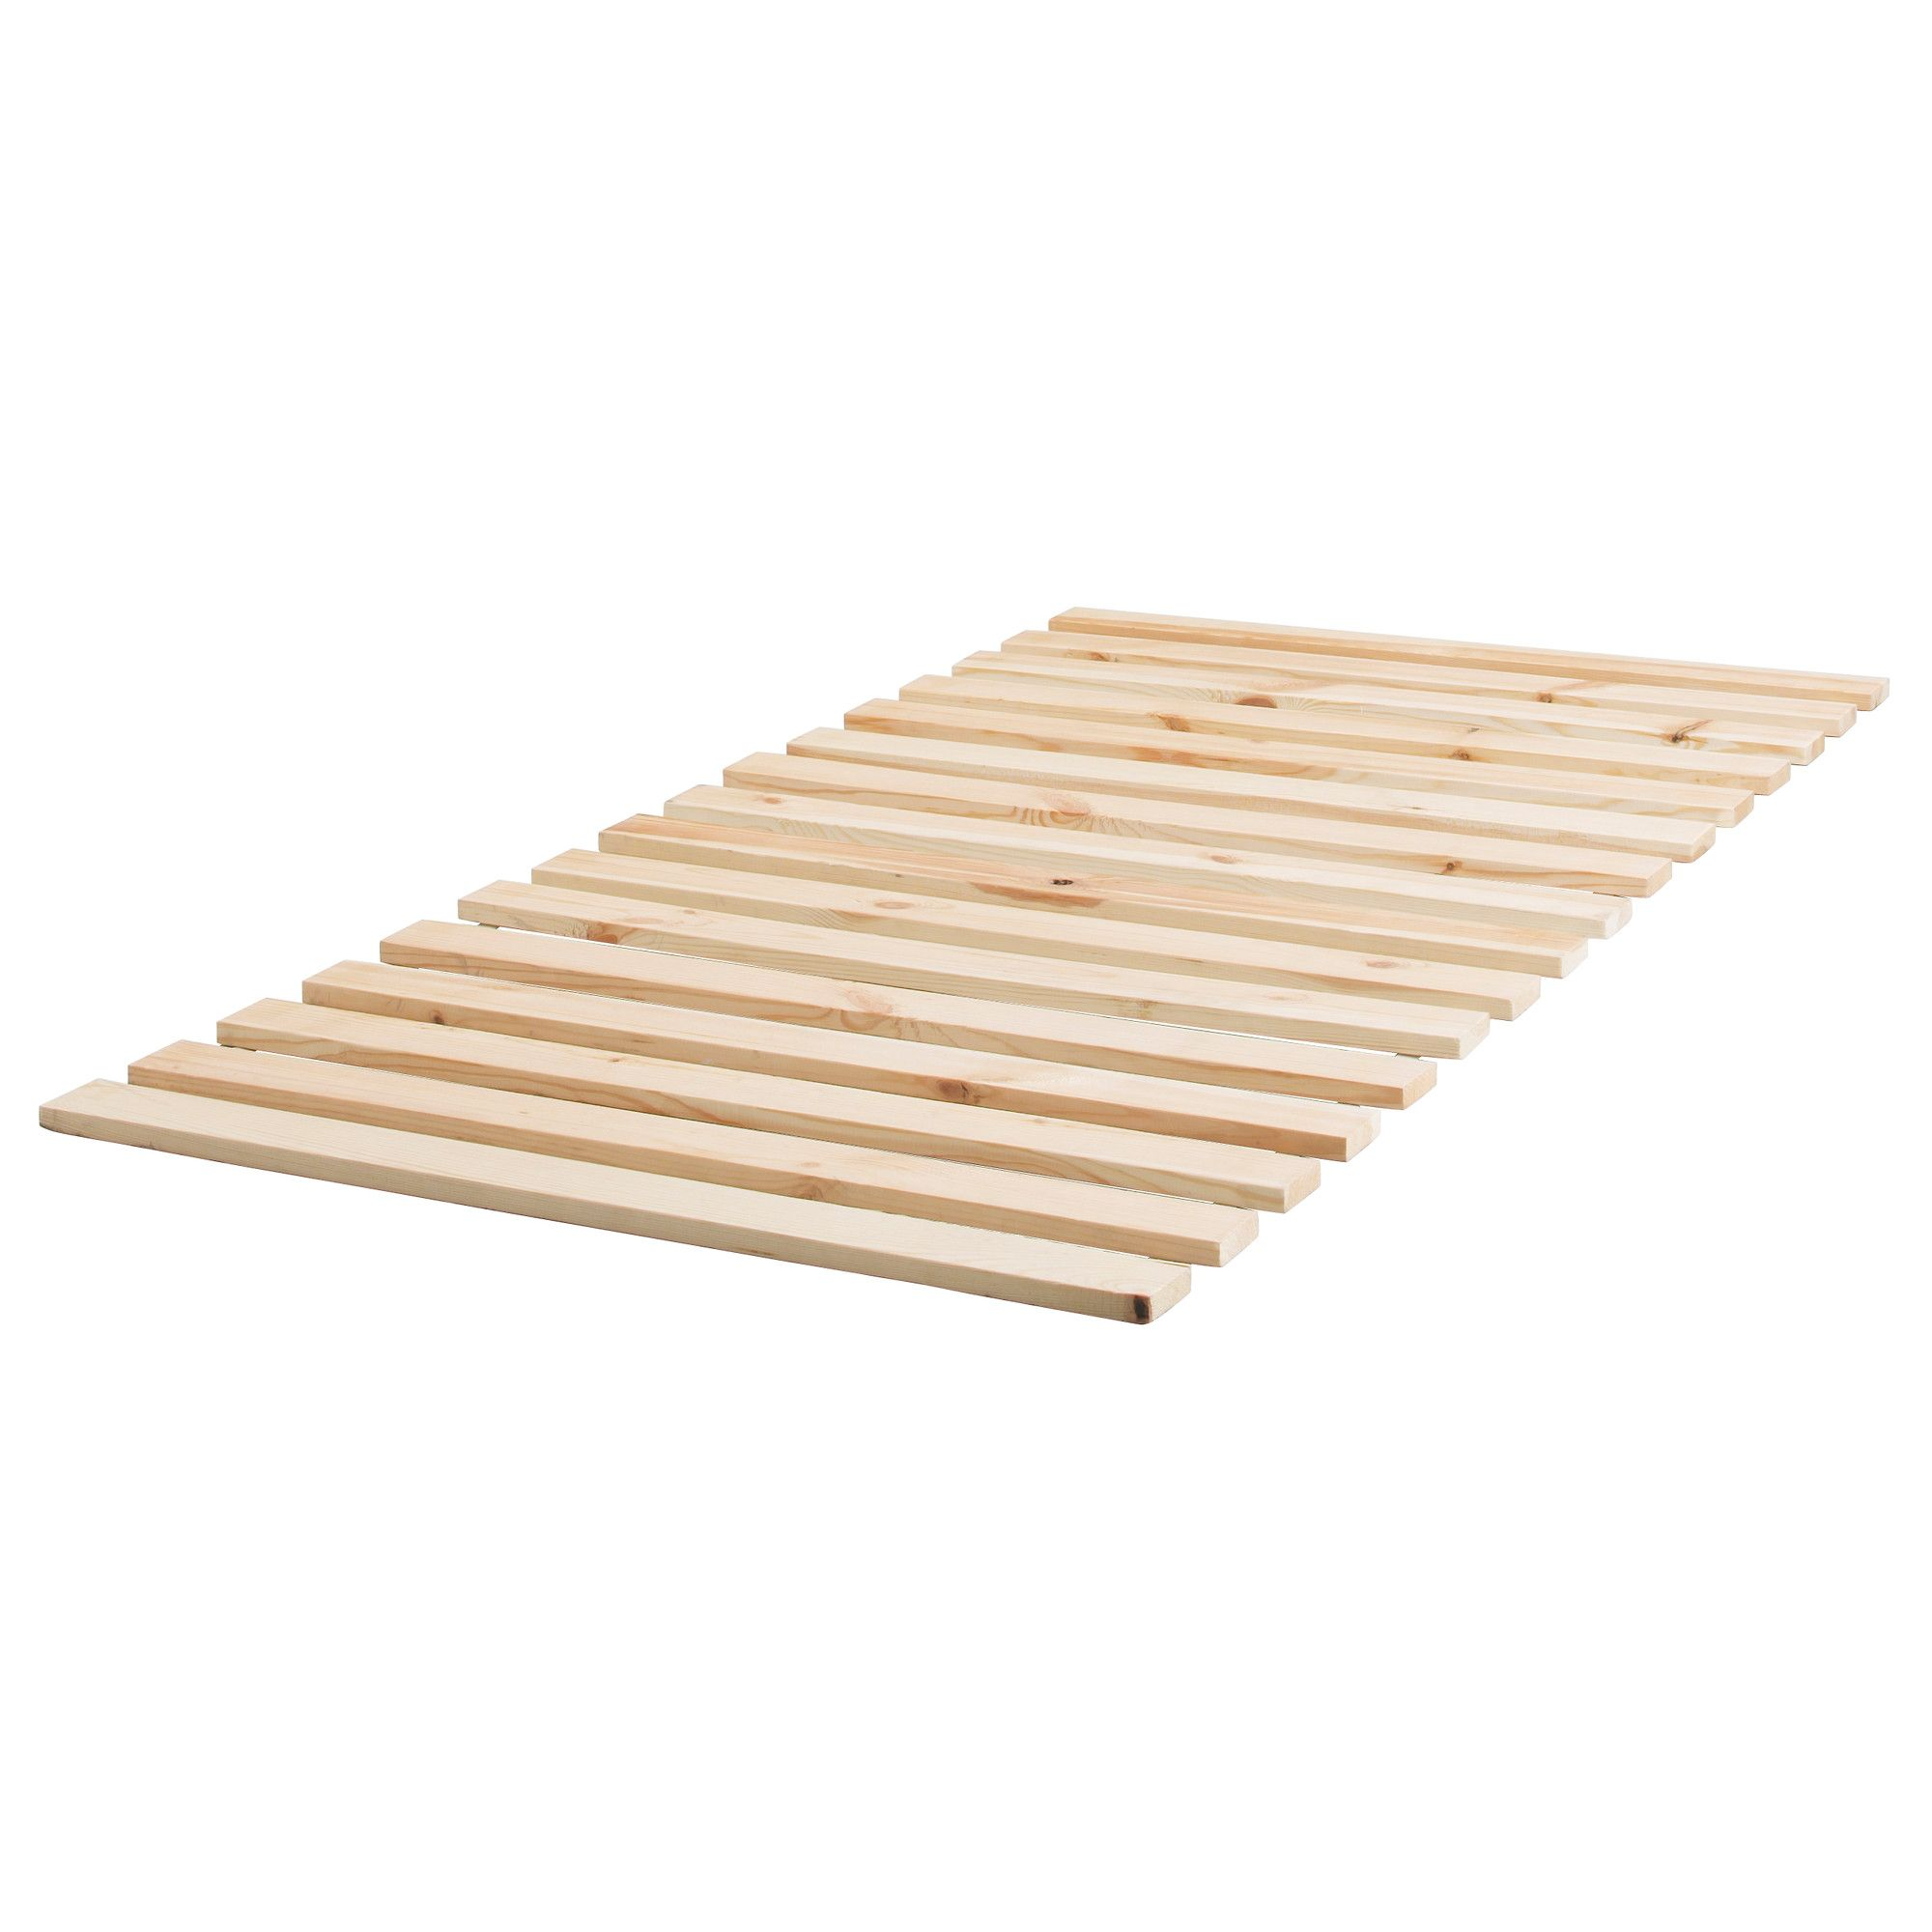 Lattenroste 90x200 Ikea Sultan Lade Slatted Bed Base - Ikea Would This Be To Lie A